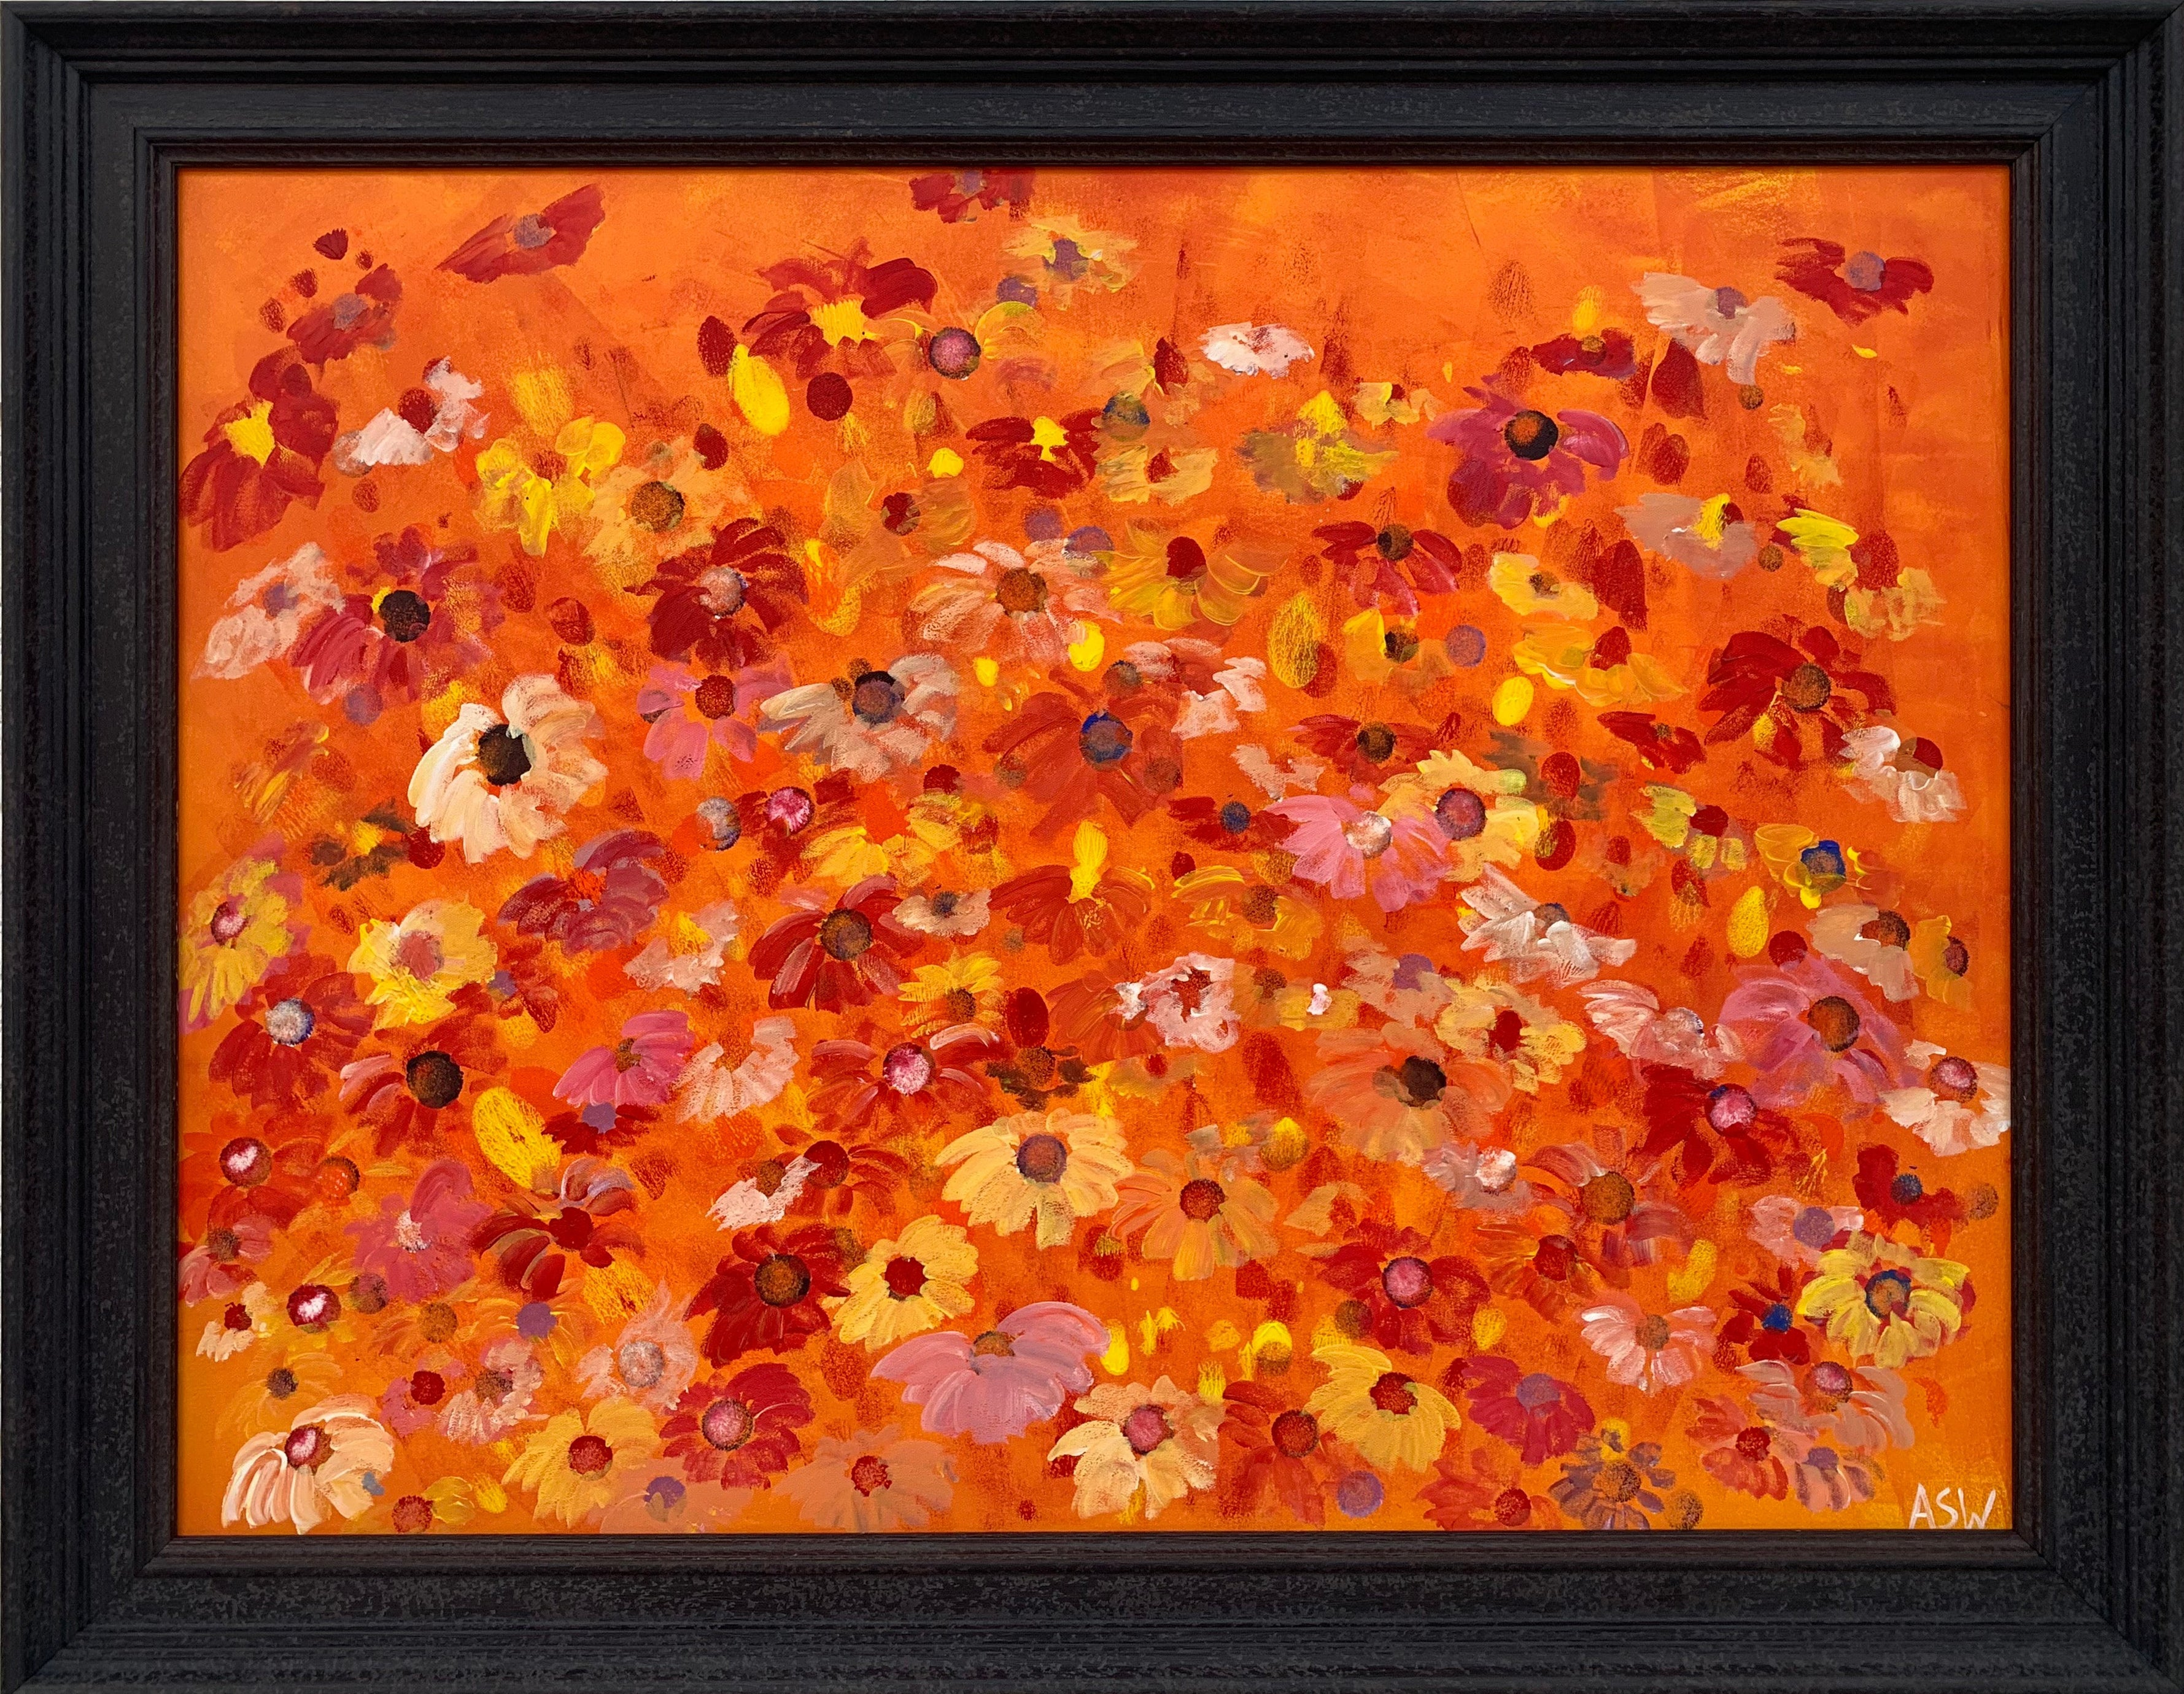 Abstract Red Pink Wild Flowers on Orange Design by British Contemporary Artist